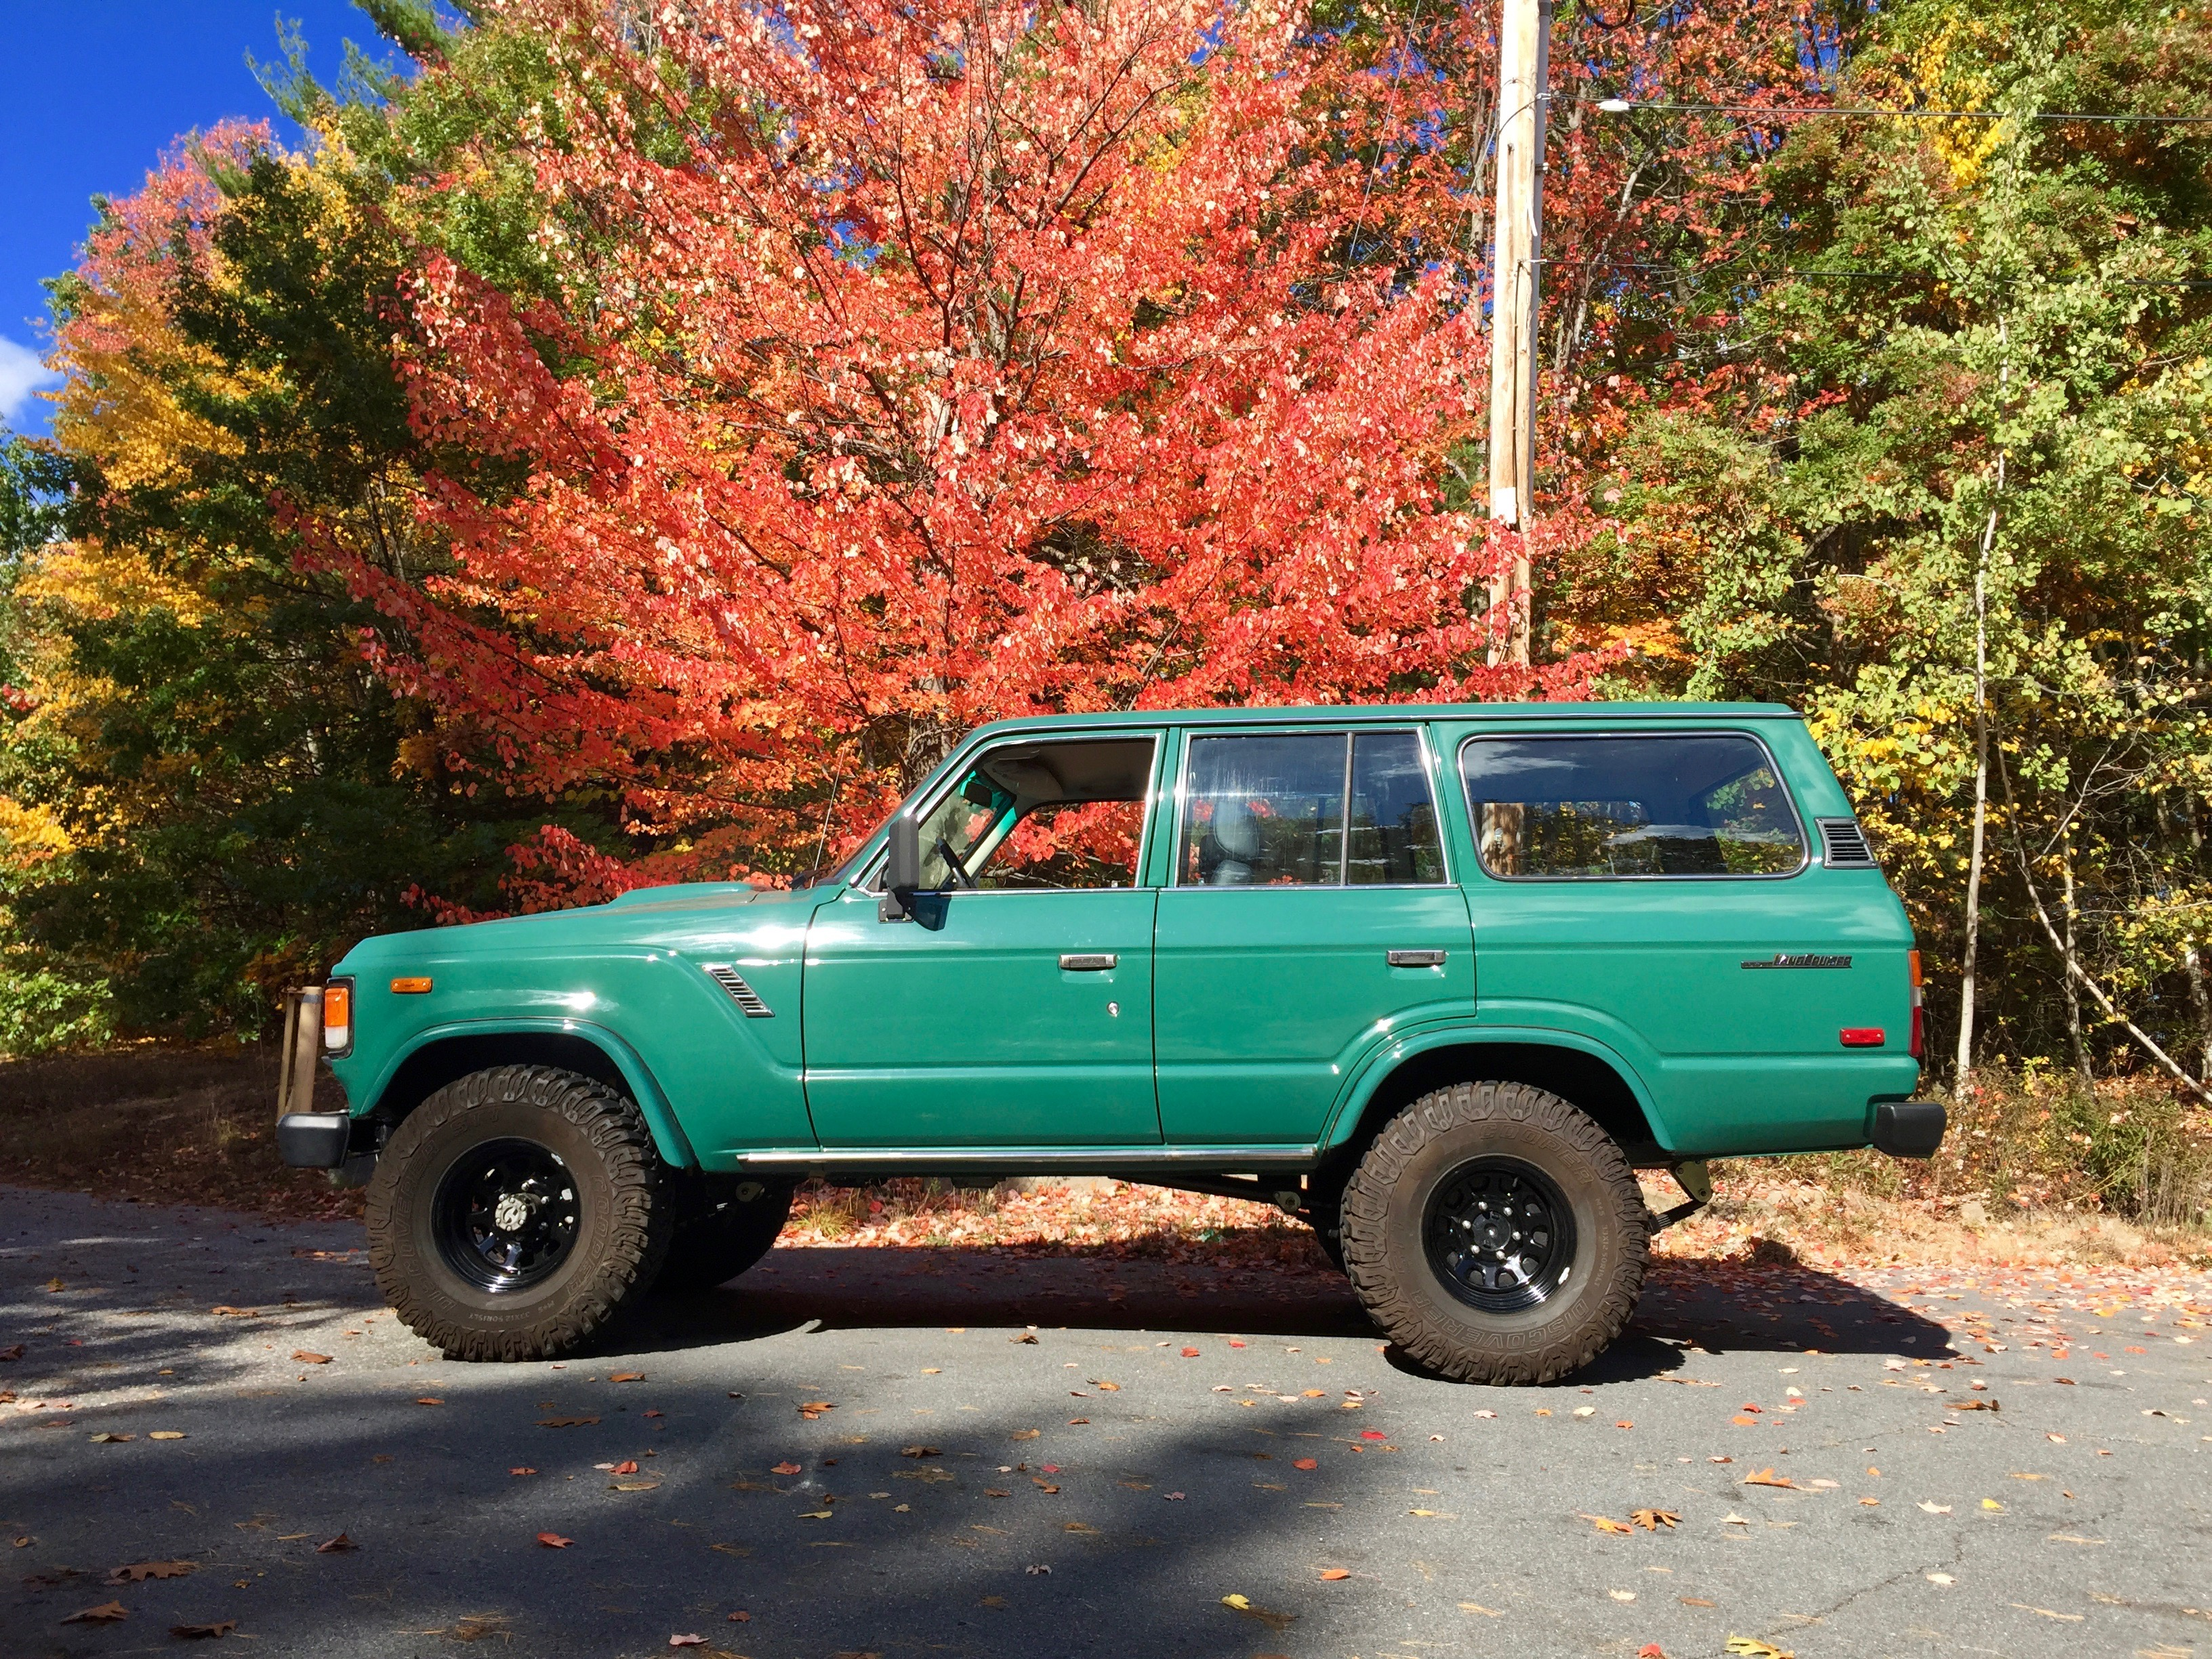 1984 FJ60 Diesel (HJ60) Conversion and MORE...